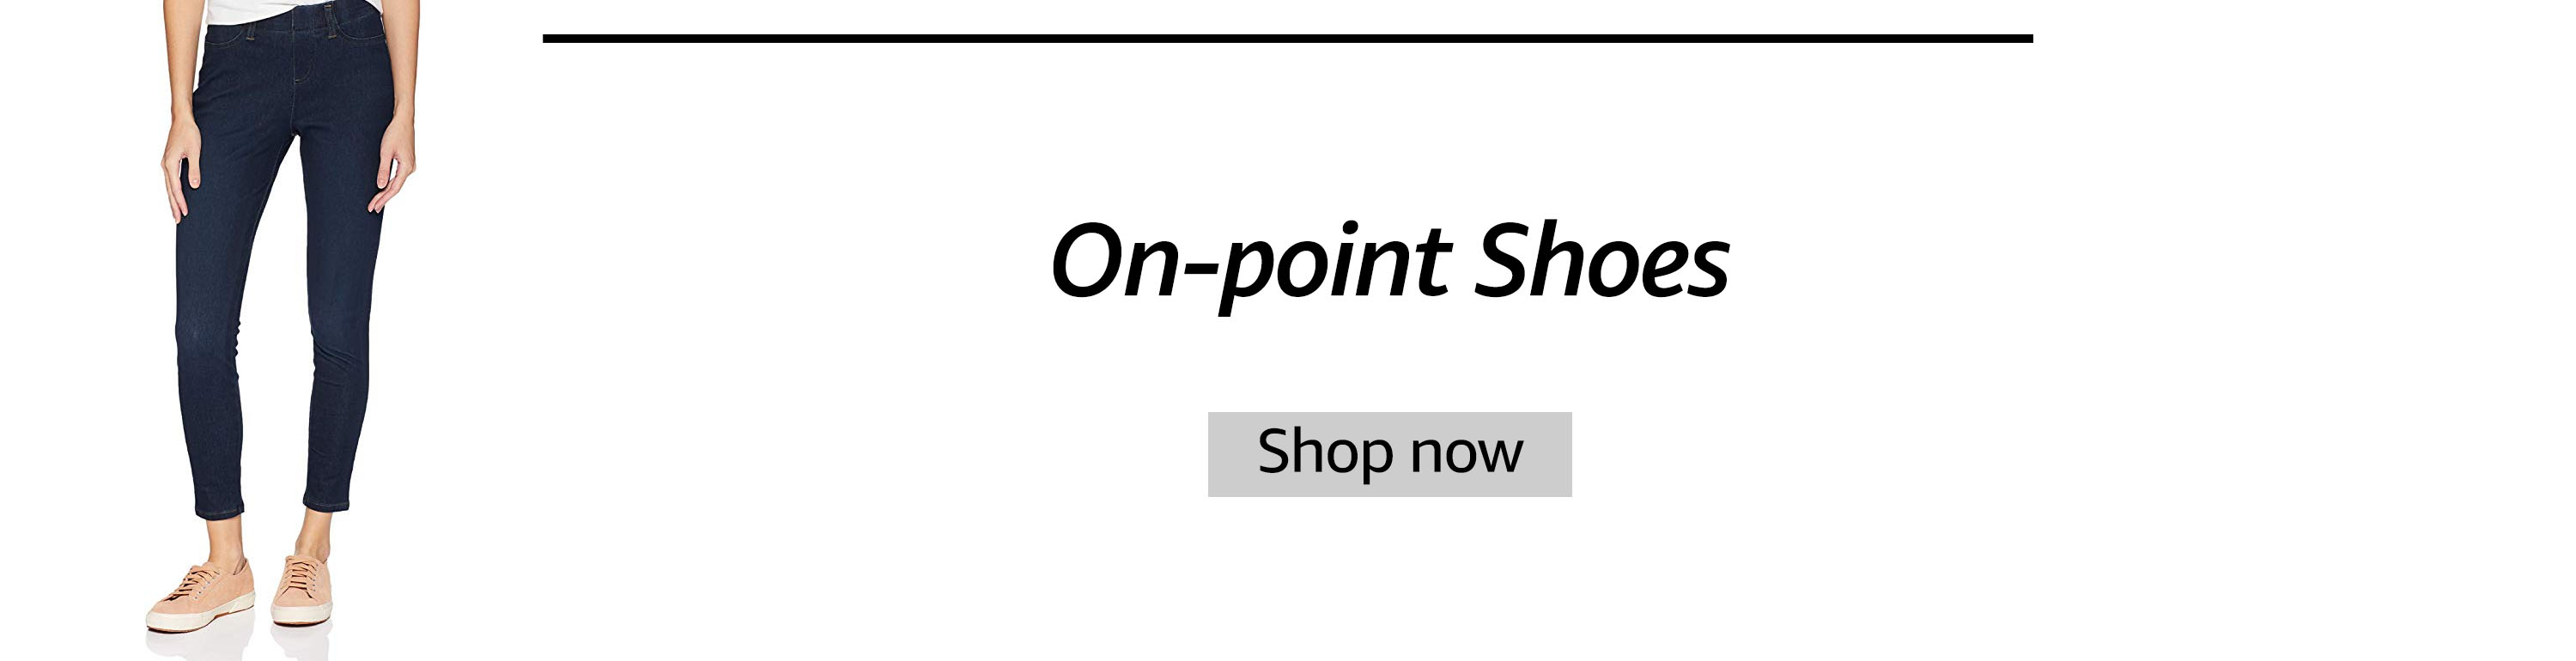 On-point Shoes